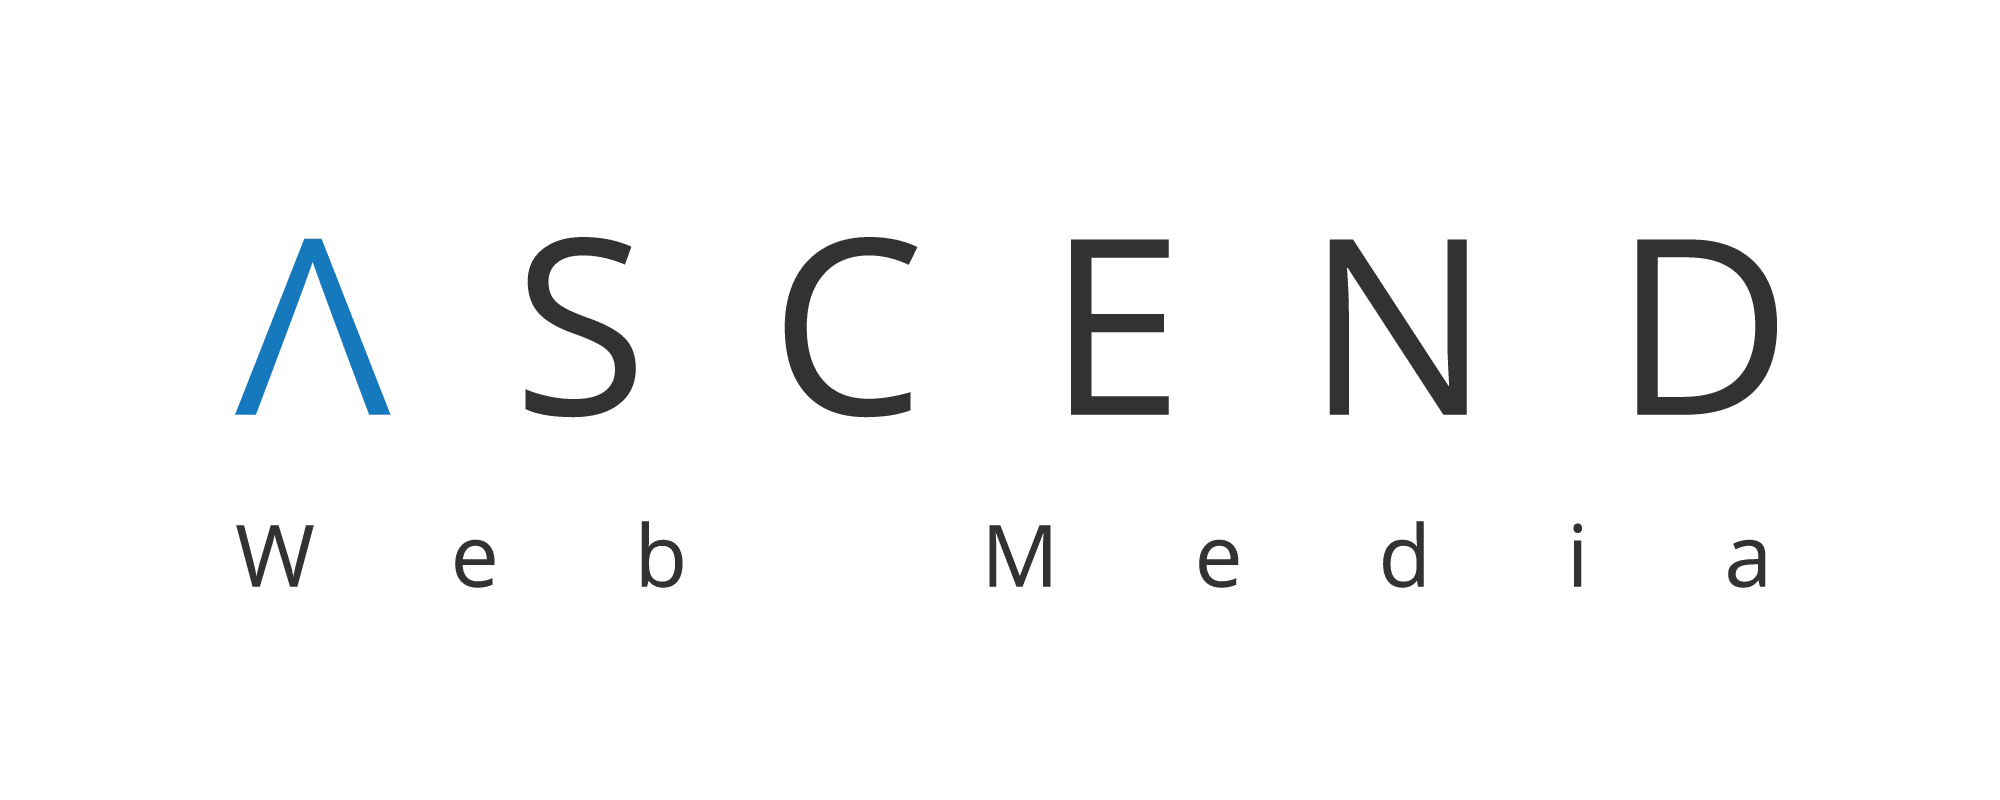 Ascend Web Media